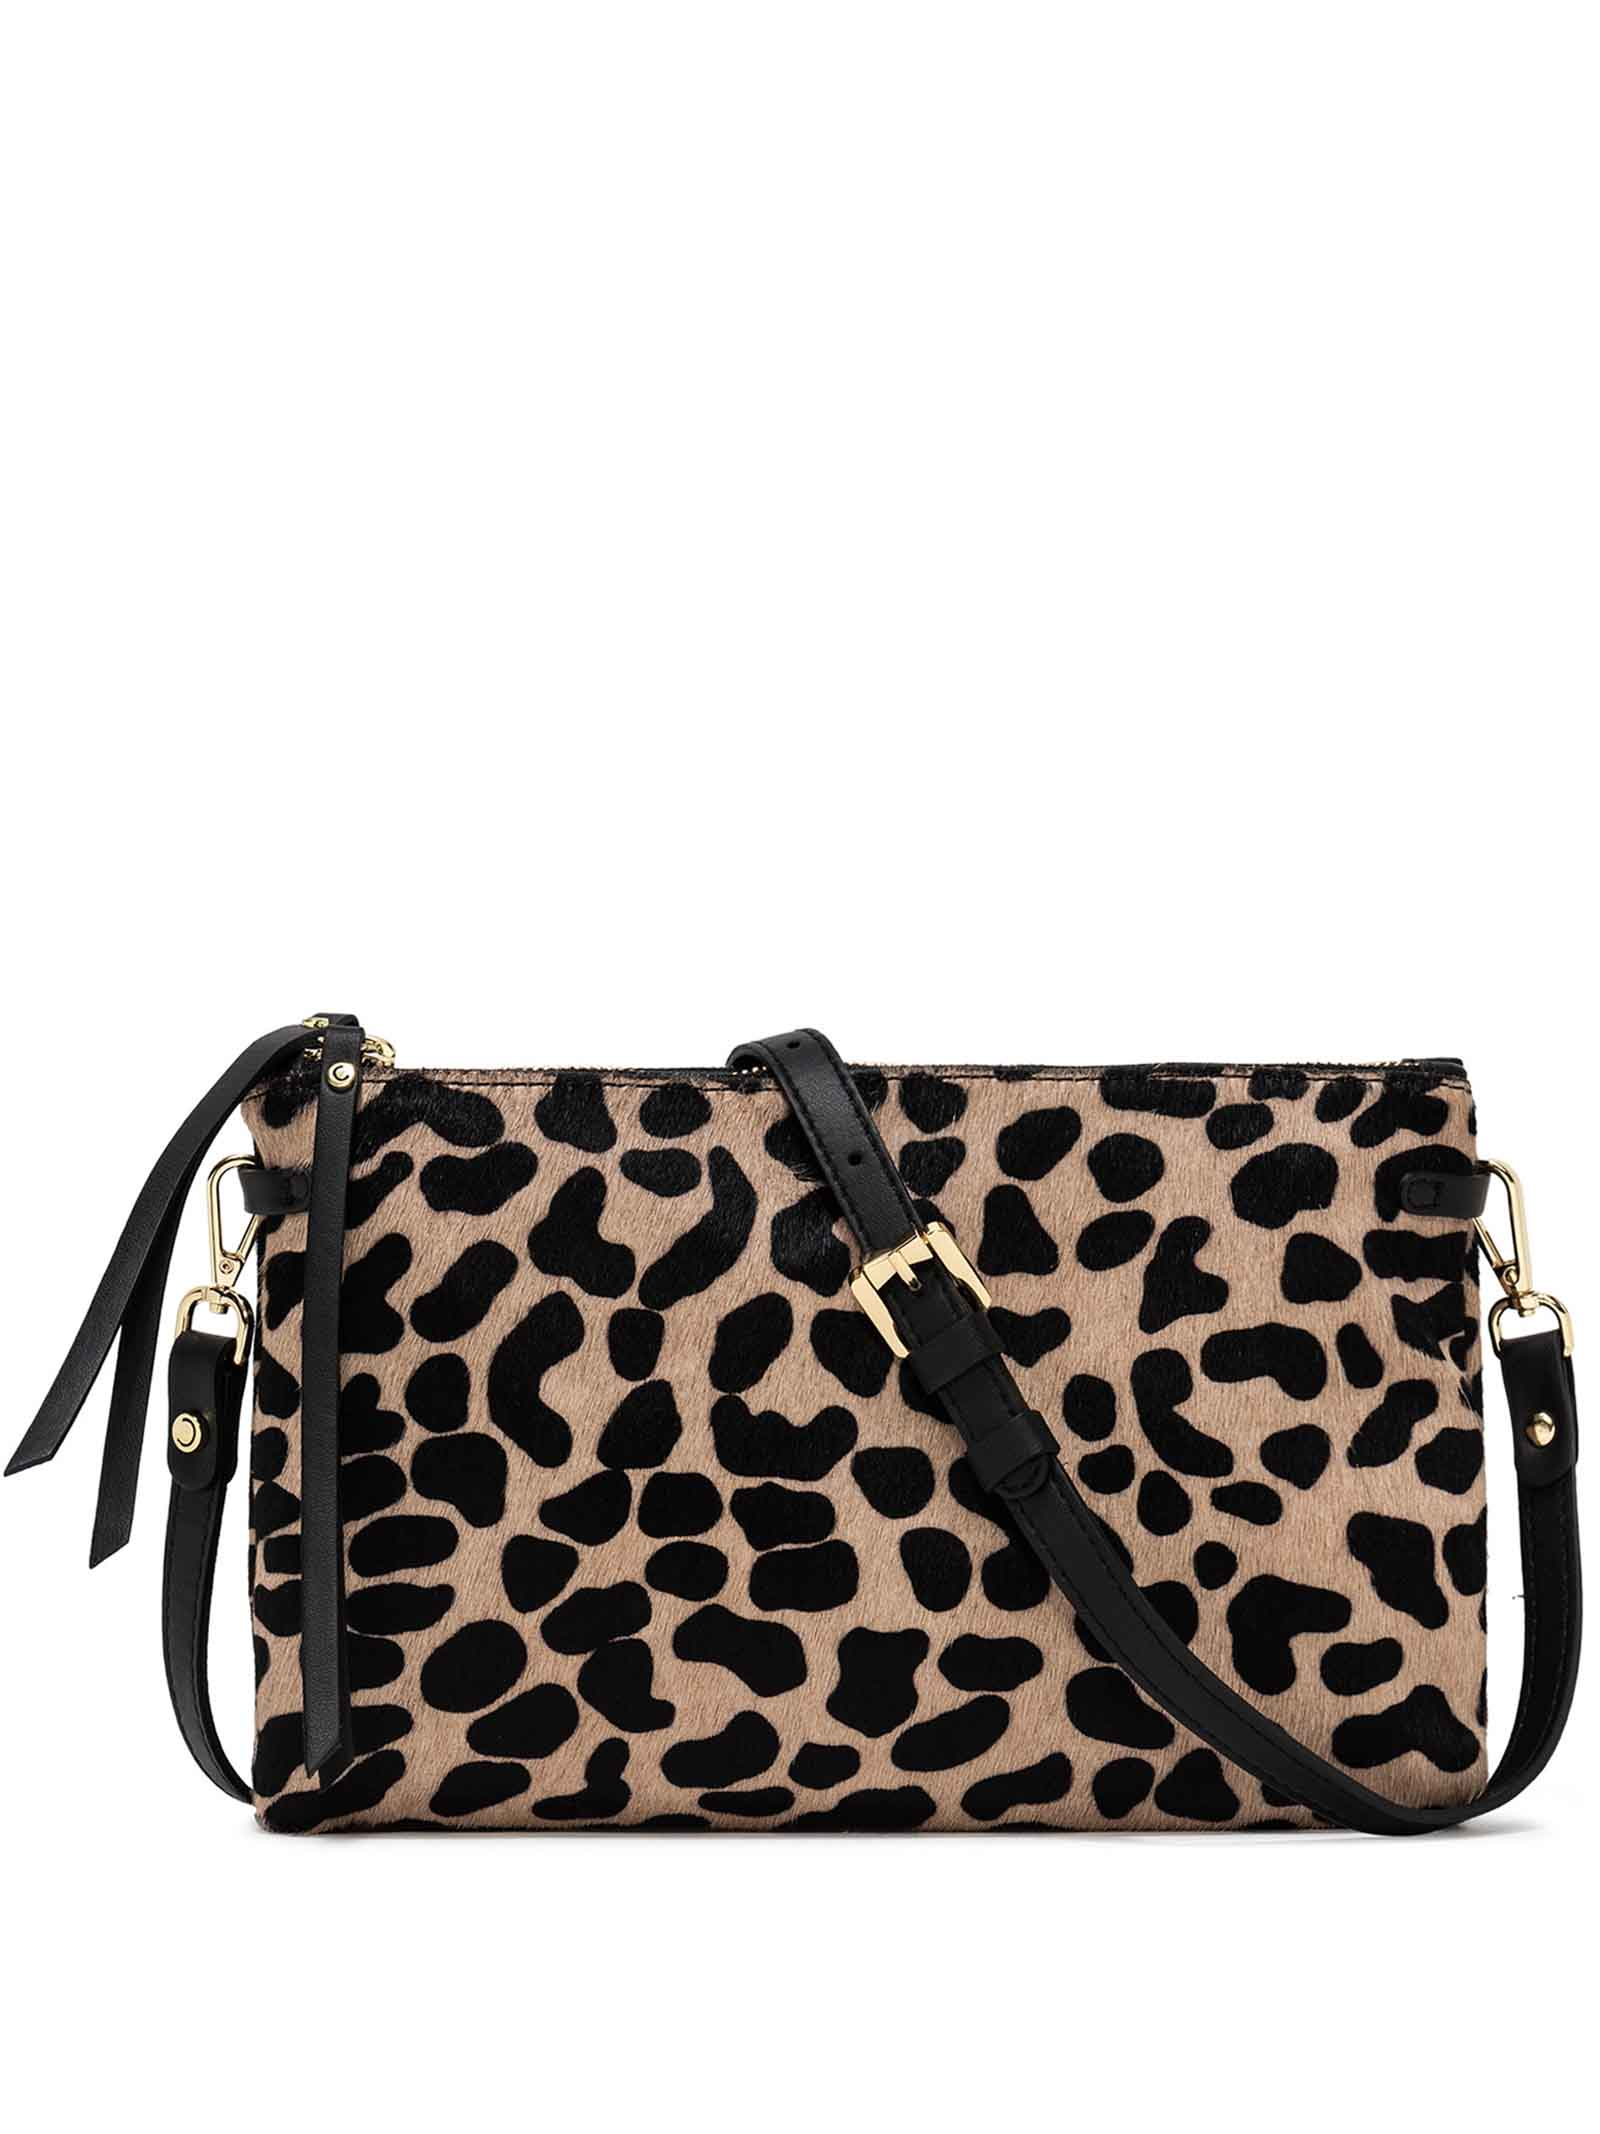 Women's Bag  Double Clutch Hermy In Animalier Pony Skin and Black Leather Adjustable And Detachable Cross-body Strap Gianni Chiarini | Bags and backpacks | BS369710730